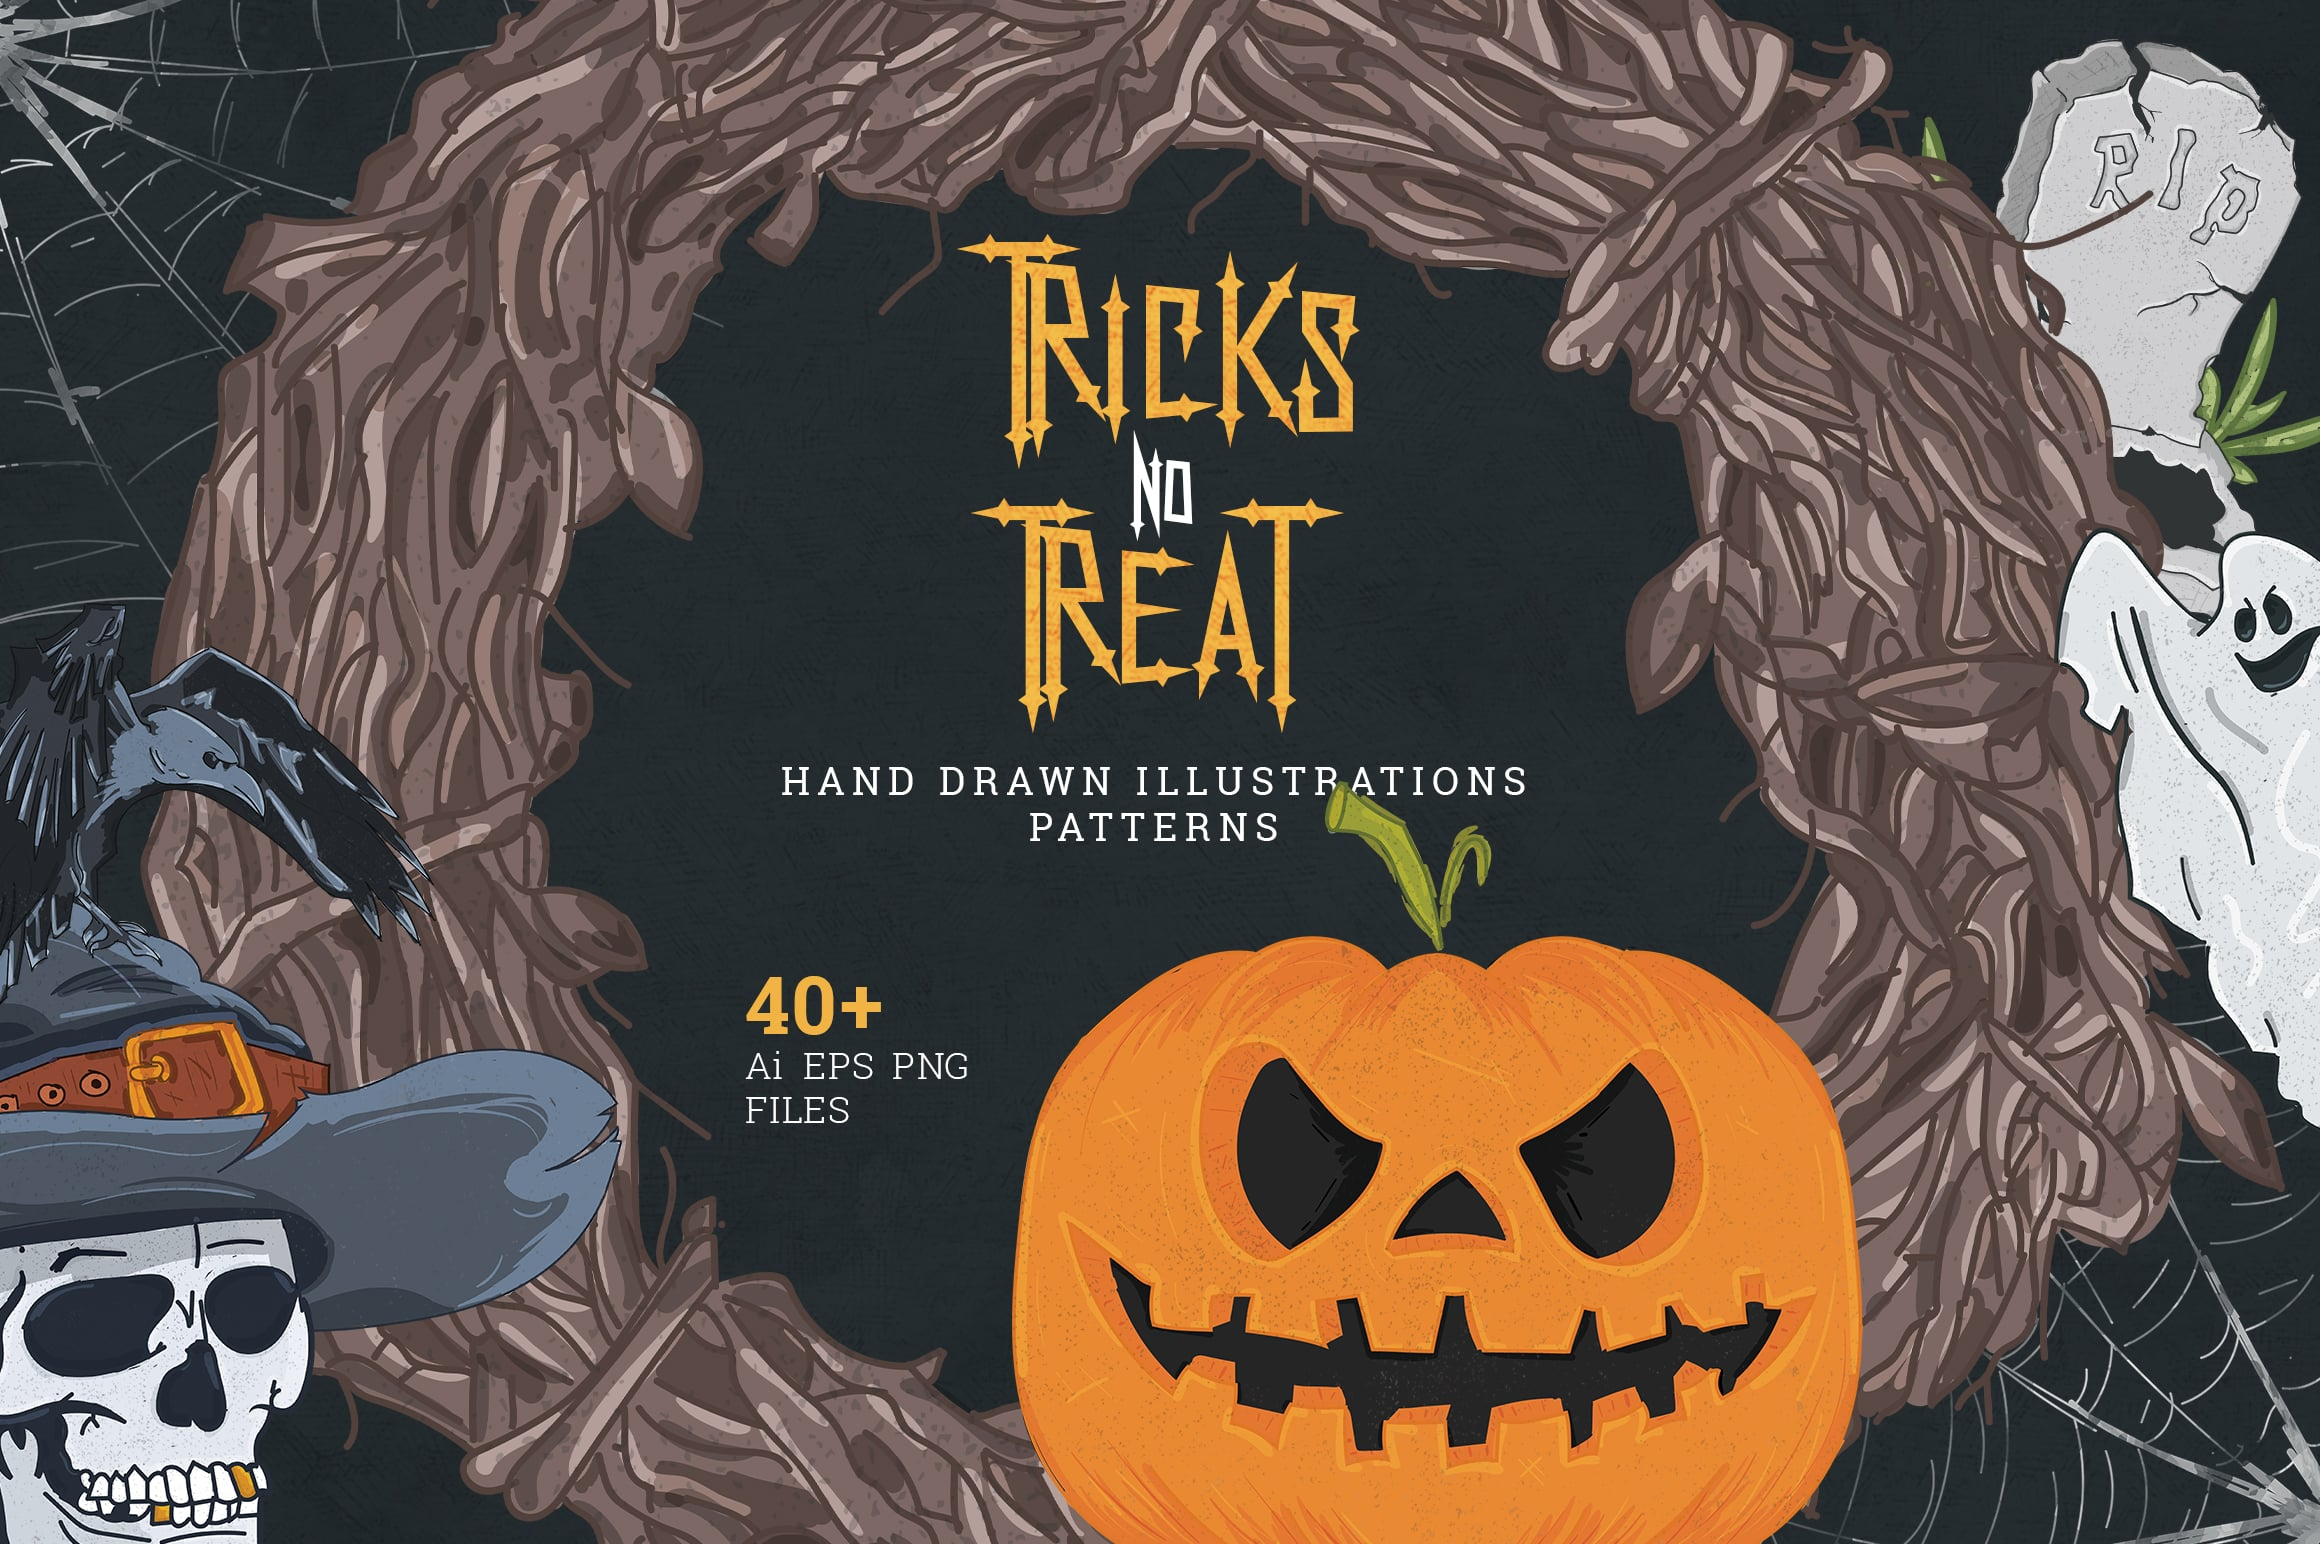 Tricks no Treat: 40+ Hand Drawn Halloween Illustrations